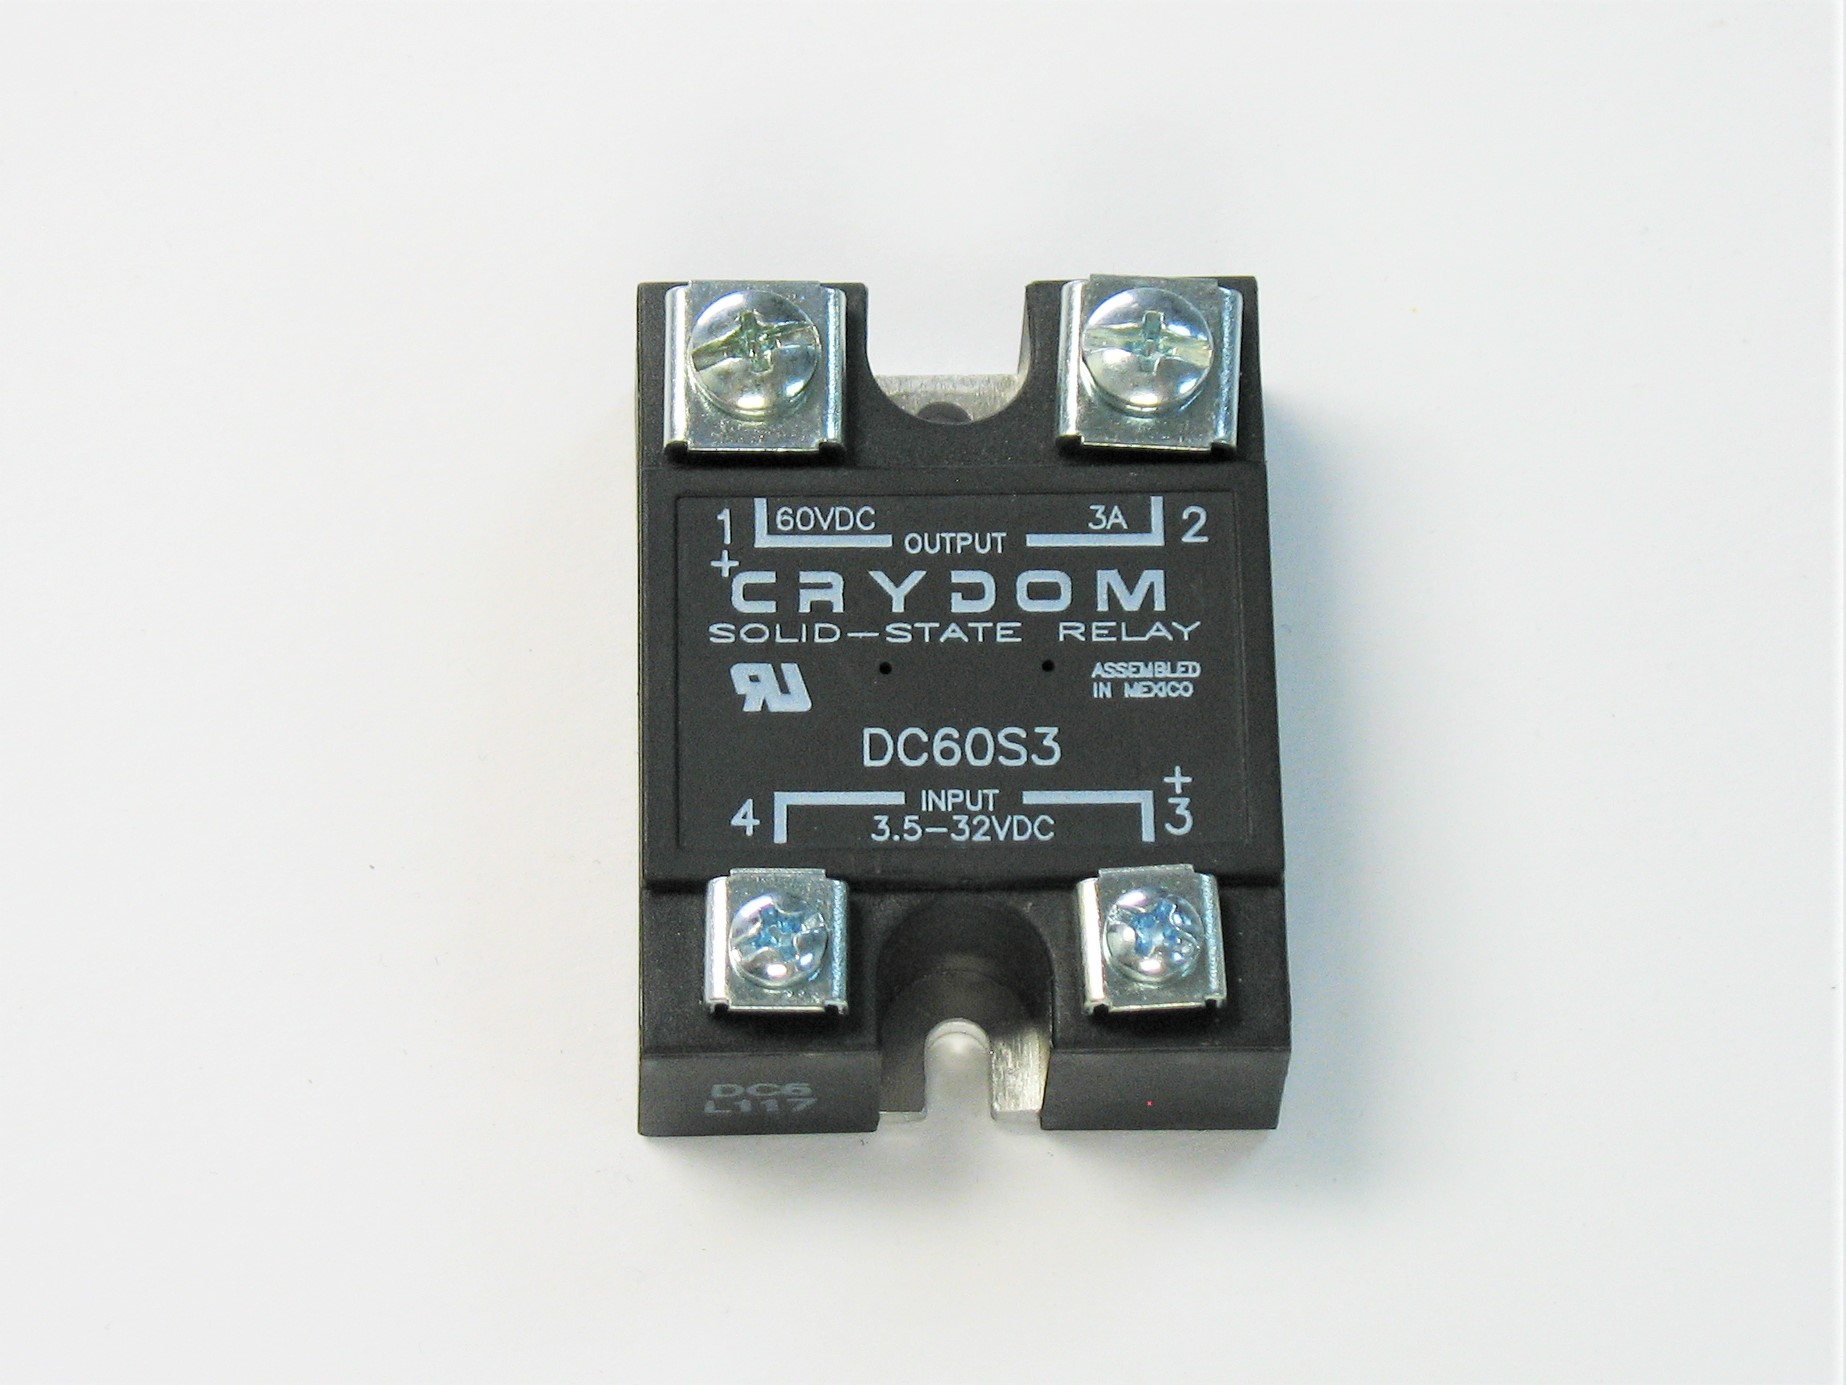 a typical solid state relay